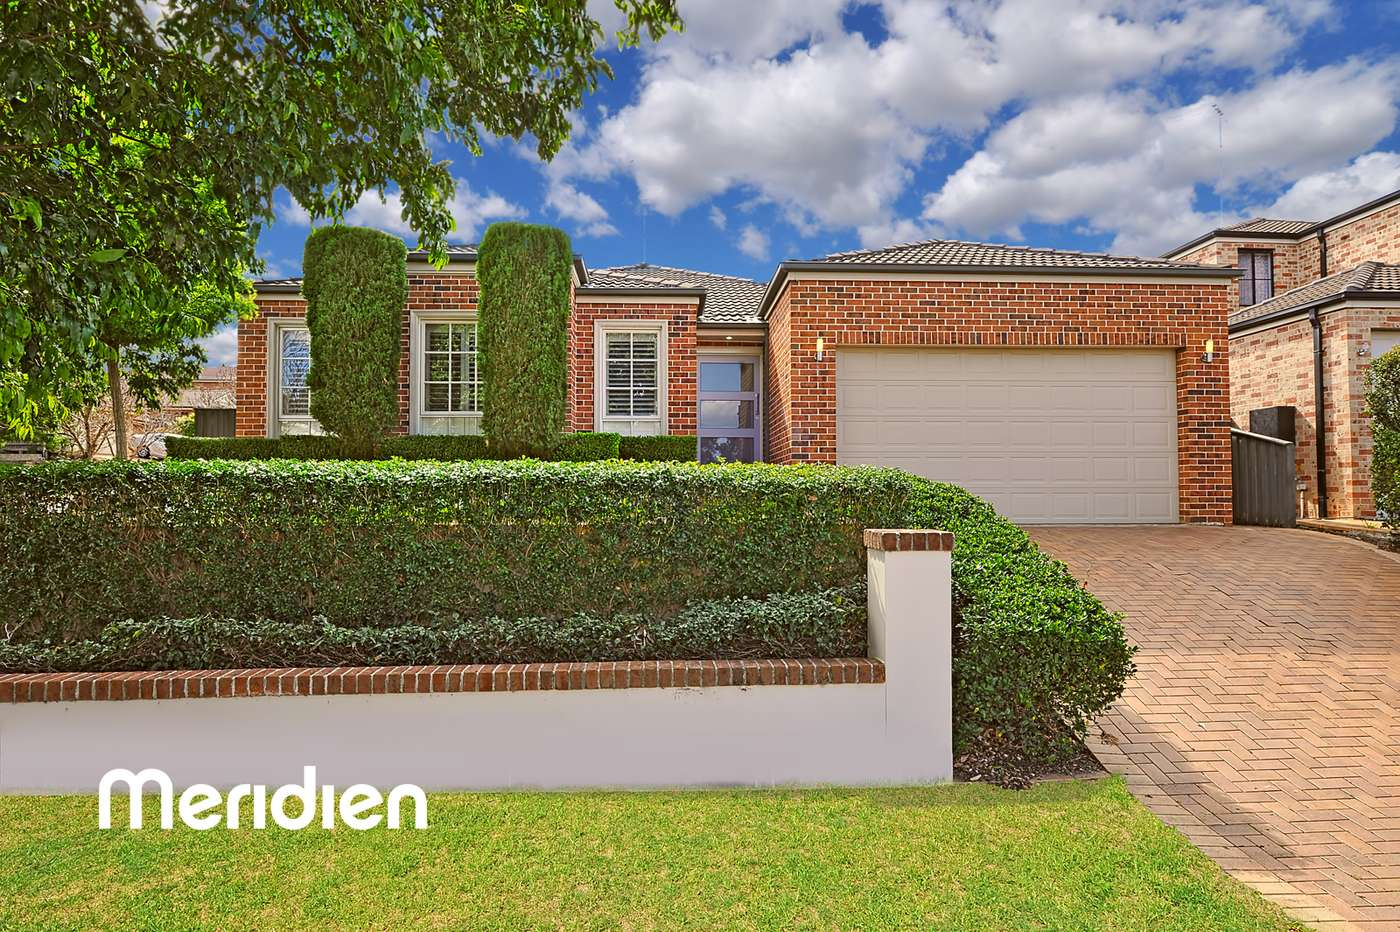 Main view of Homely house listing, 53 Perisher Road, Beaumont Hills, NSW 2155